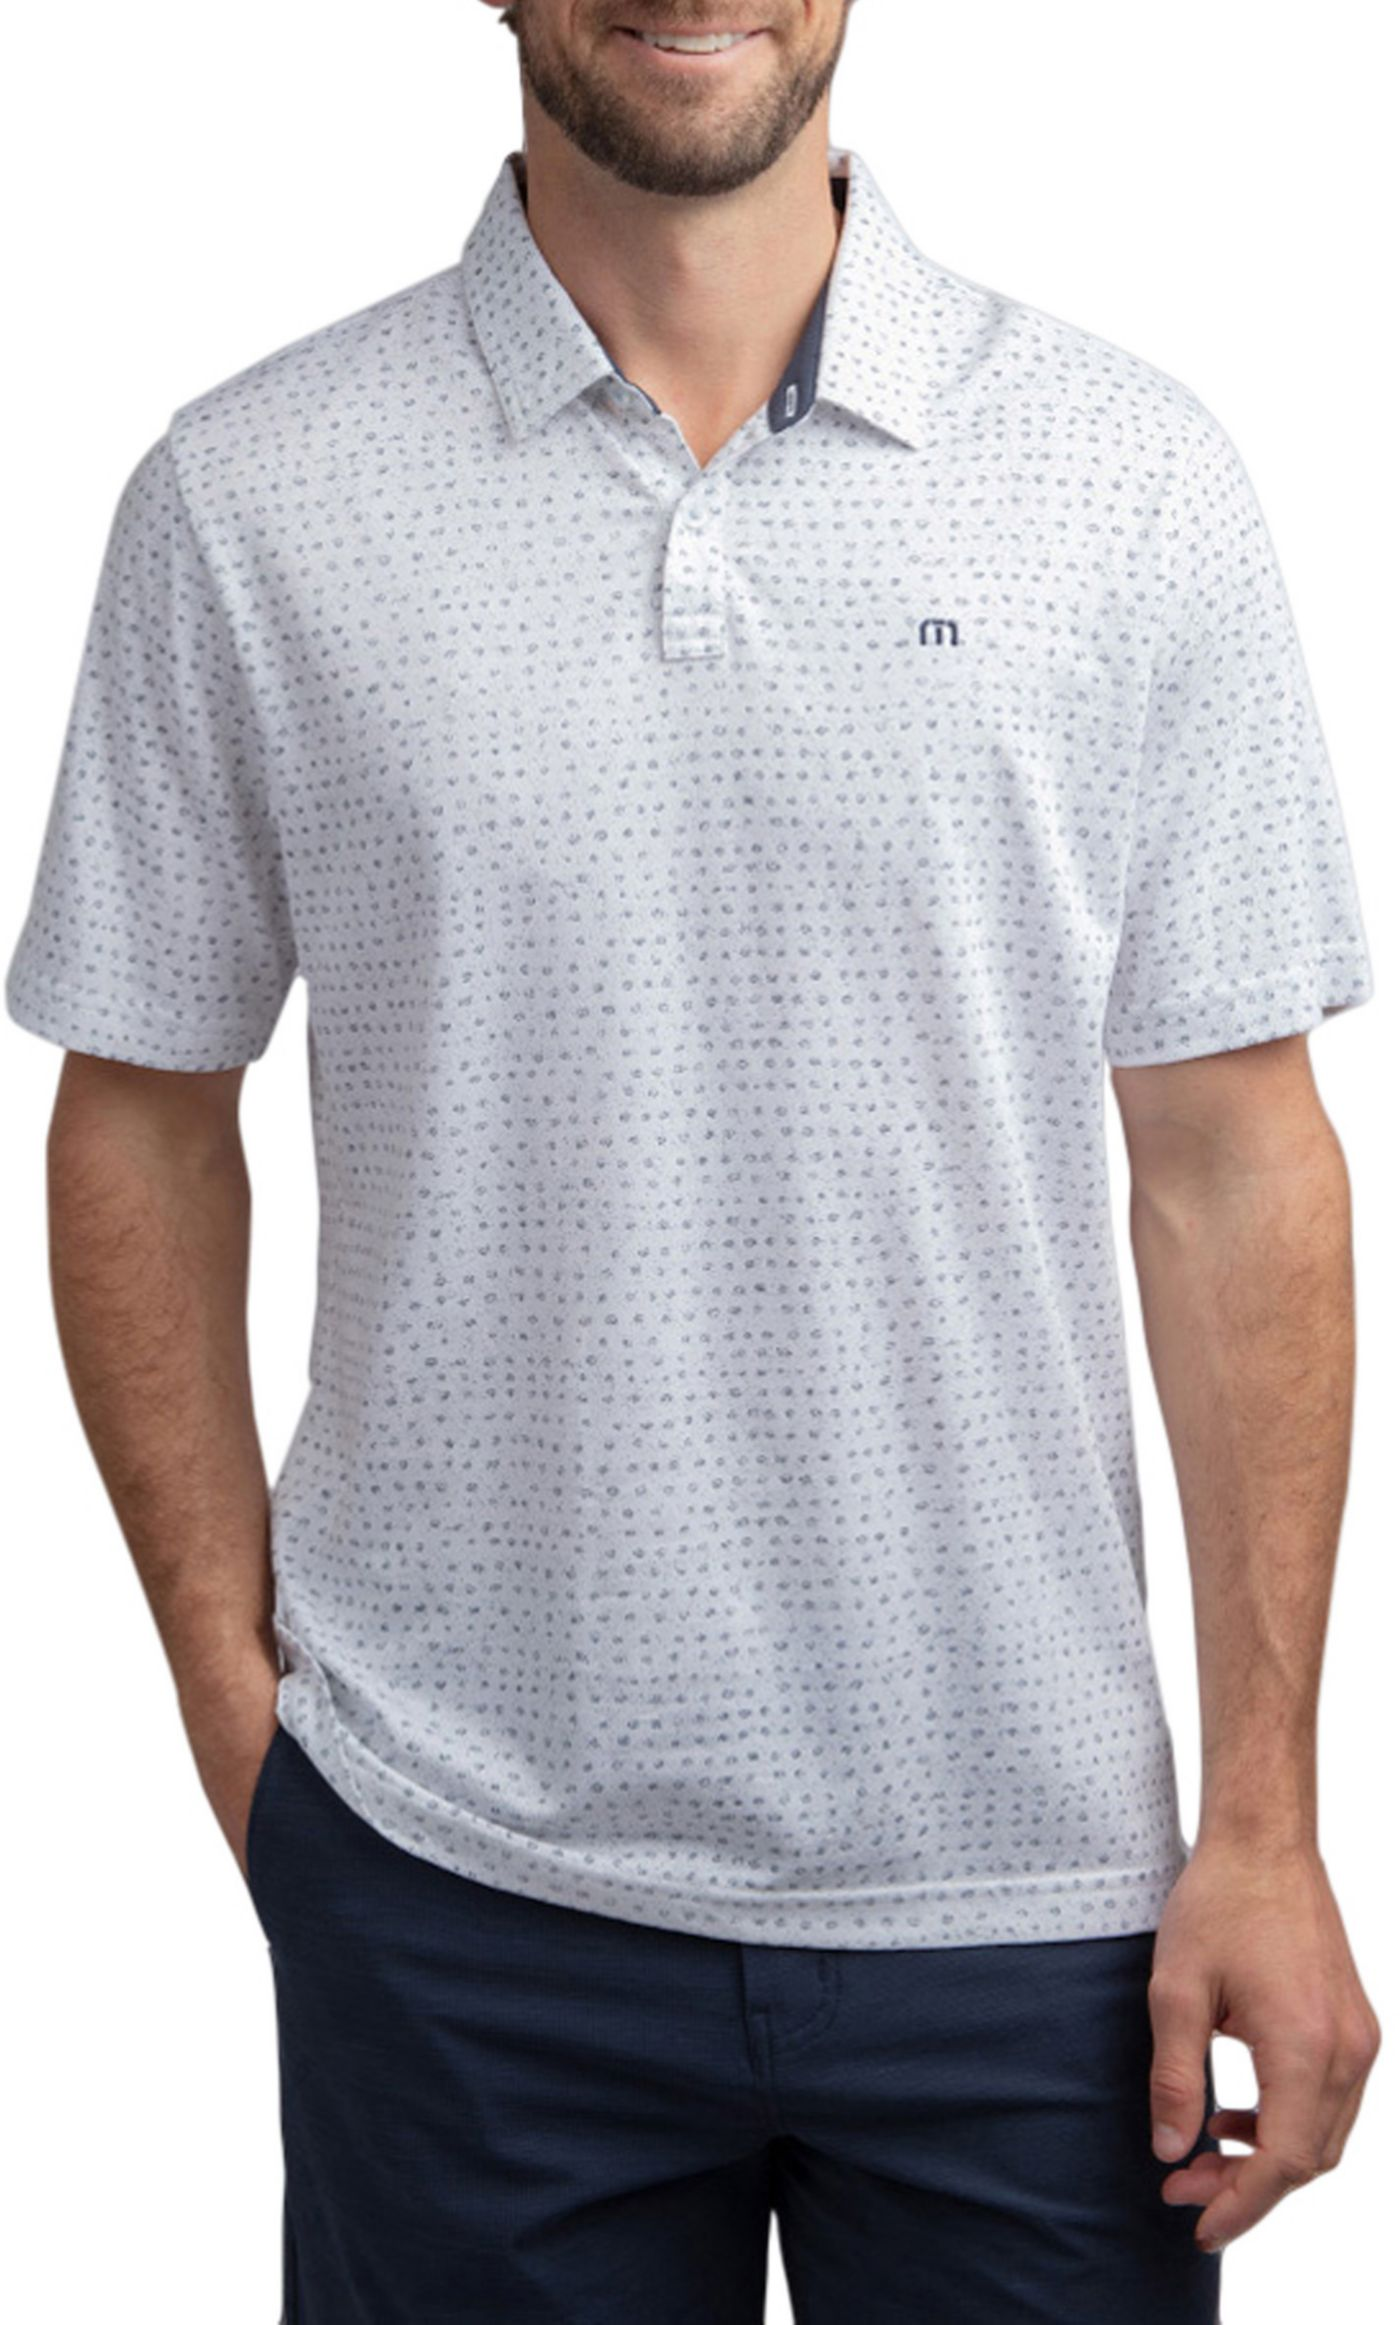 TravisMathew Men's Right Now Right Now Golf Polo